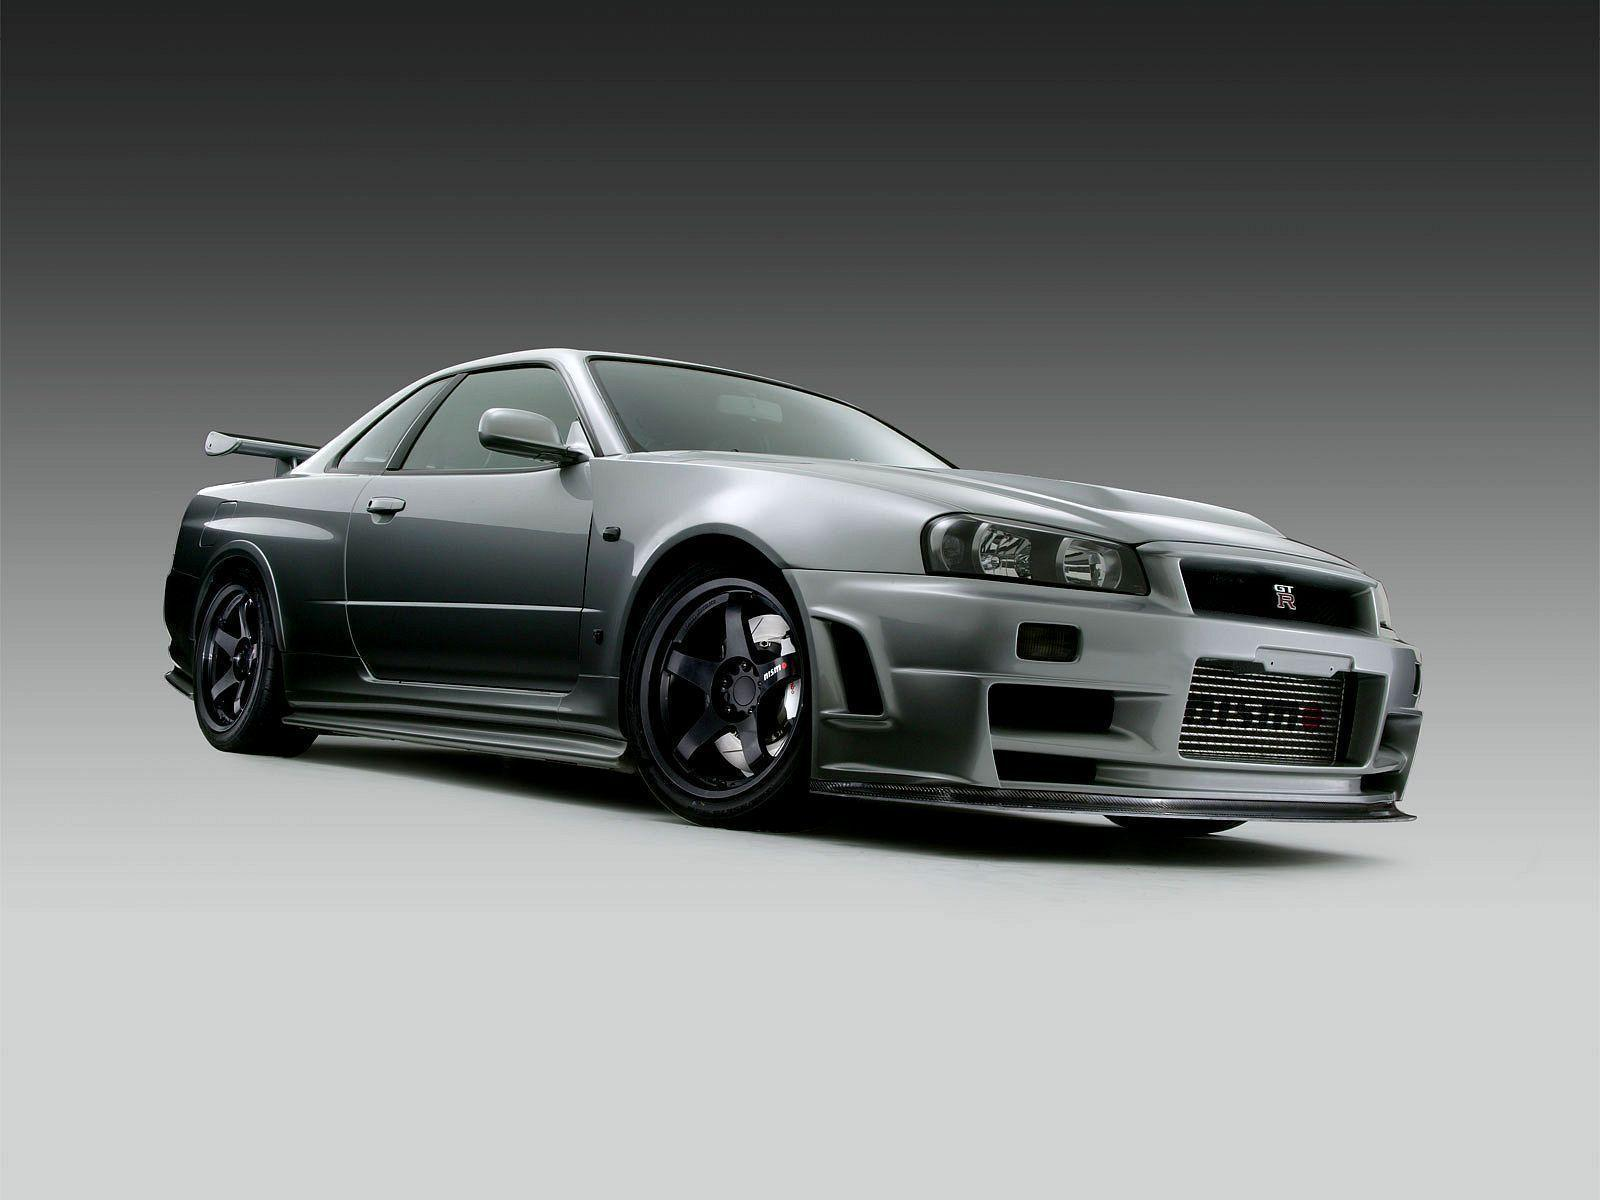 Cars Nissan Skyline R34 Nismo Wallpapers